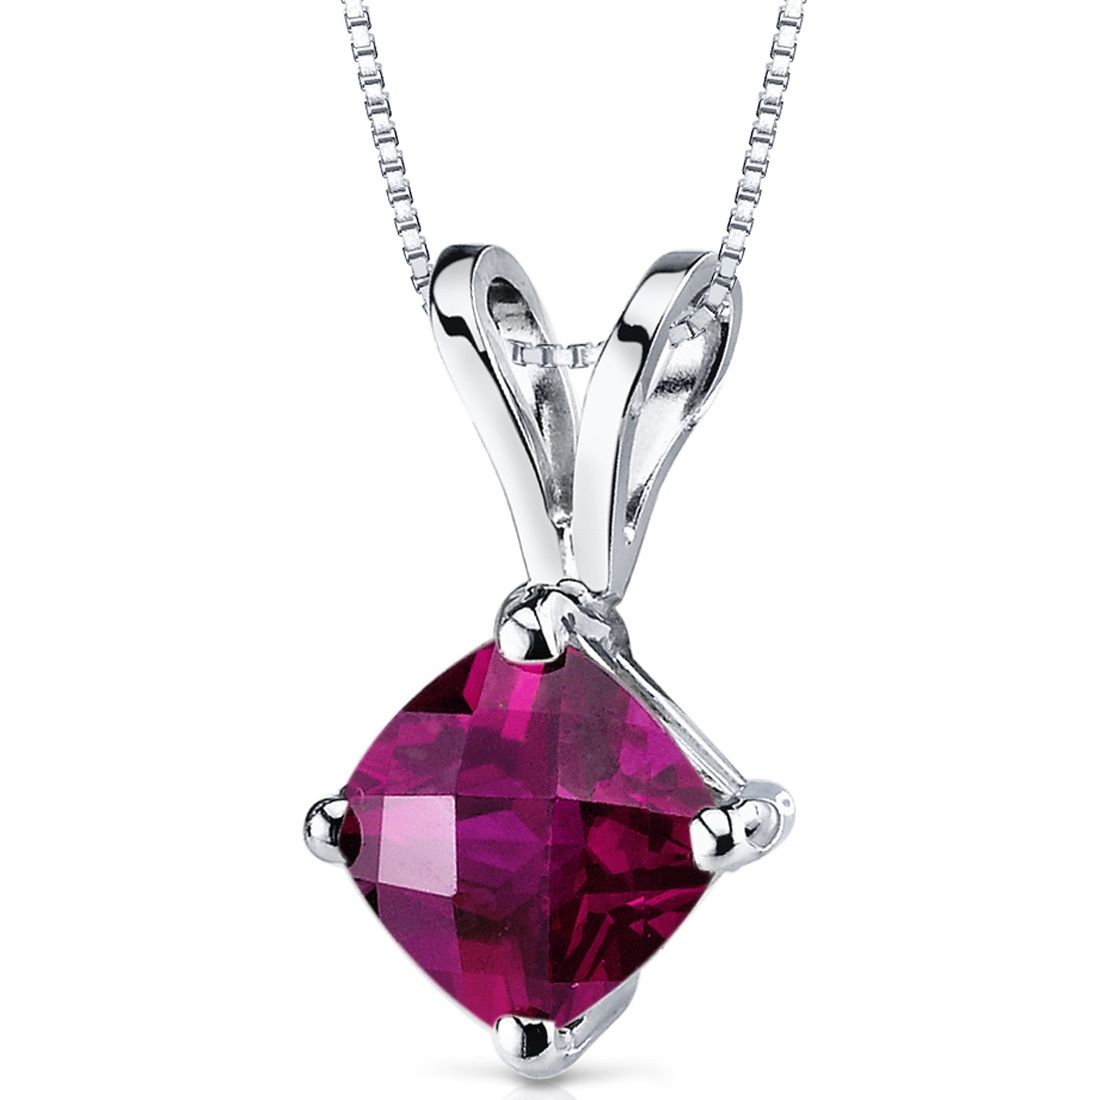 MSRP: $399.99  Our Price: $279.99  Savings: $120.00    Item Number: P9152  Availability: Usually Ships in 5 Business Days    PRODUCT DESCRIPTION:    Crafted in 14k White Gold, this classically designed pendant features a beautiful Cushion Cut Lab Created Ruby in a beautiful and solitaire design.    FEATURES:    Crafted in 14k White Gold  6.0 x 6.0mm Cushion Cut Lab Created Ruby   Classic Solitaire Design  18 Inch Box Chain    PRODUCT SPECIFICATIONS:    Metal Type: 14k White Gold  Primary…